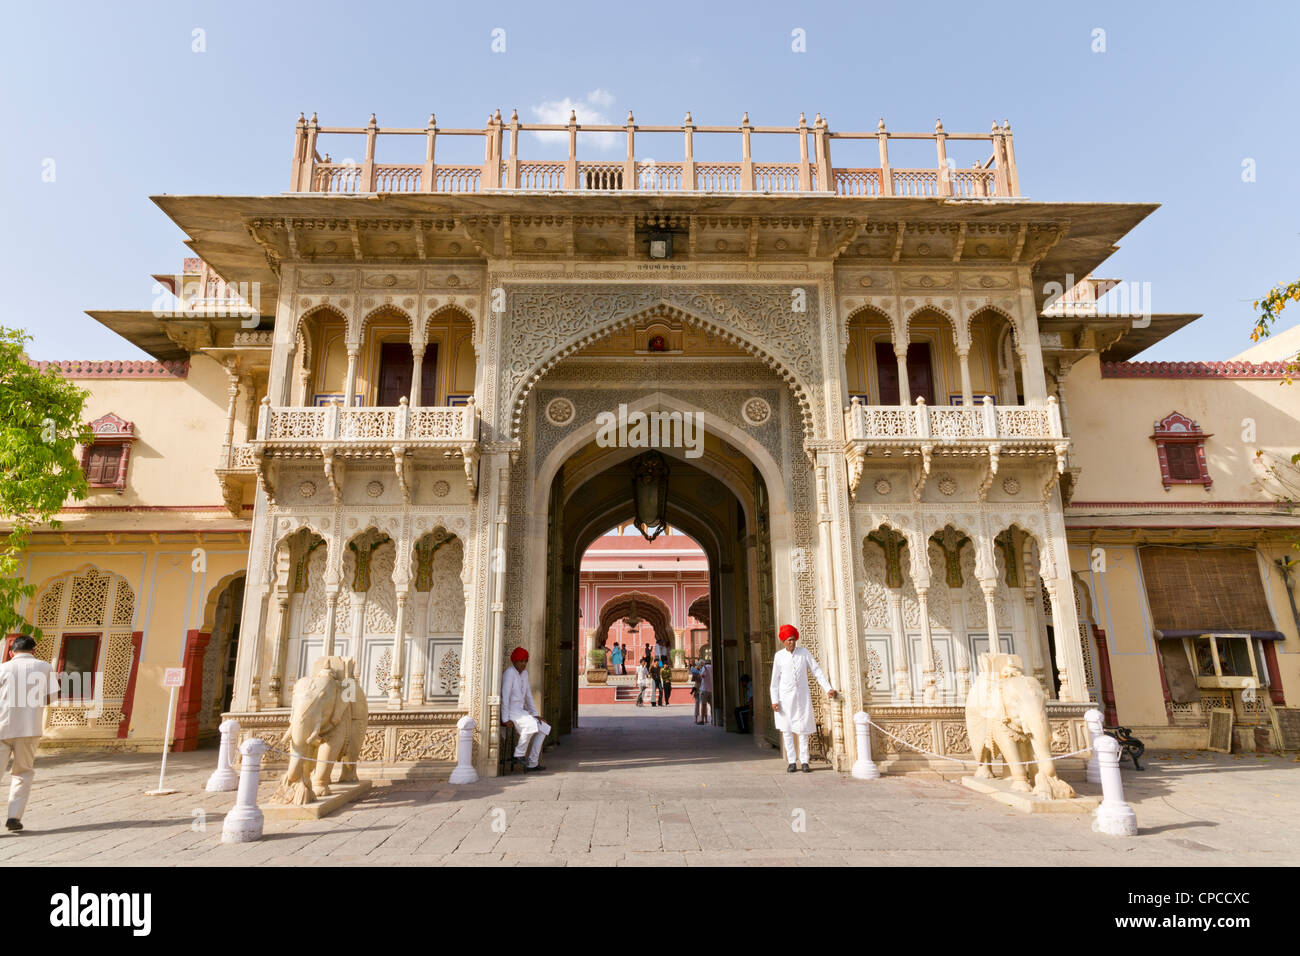 Entrance arch to the Chandra Mahal or Chandra Niwas. The most commanding building in the City Palace complex. Stock Photo